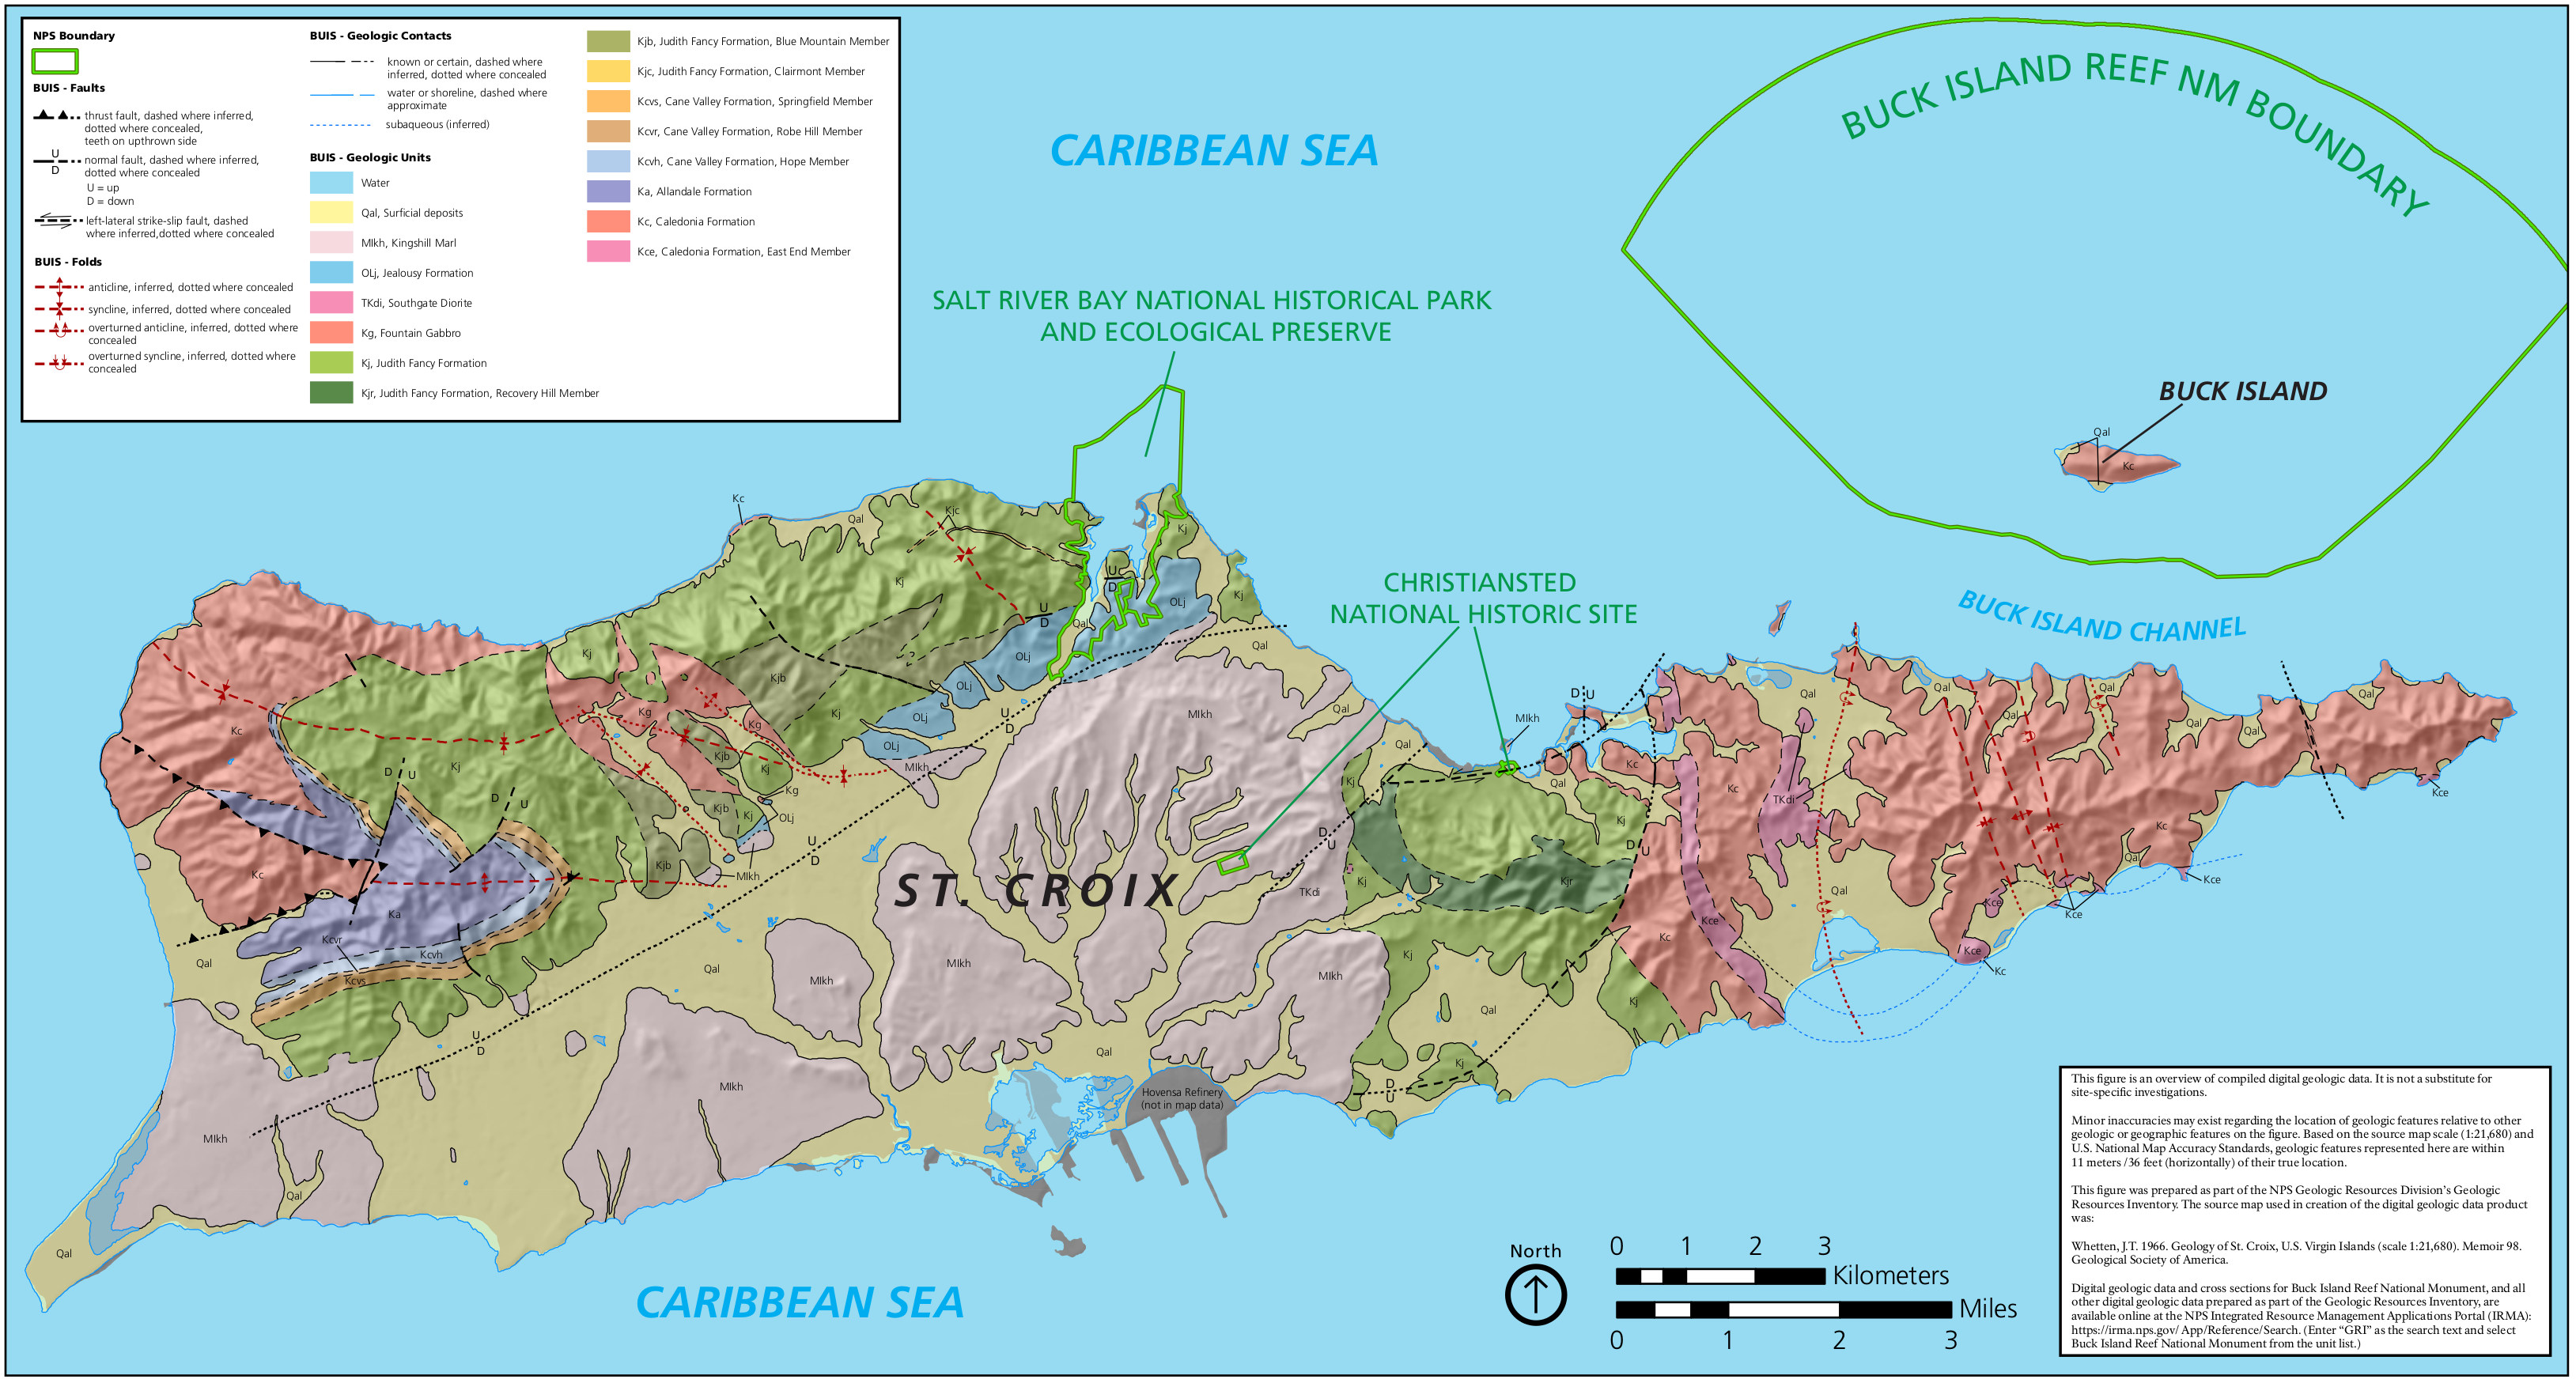 Virgin Islands Maps NPMapscom Just Free Maps Period - Map of st thomas us virgin islands